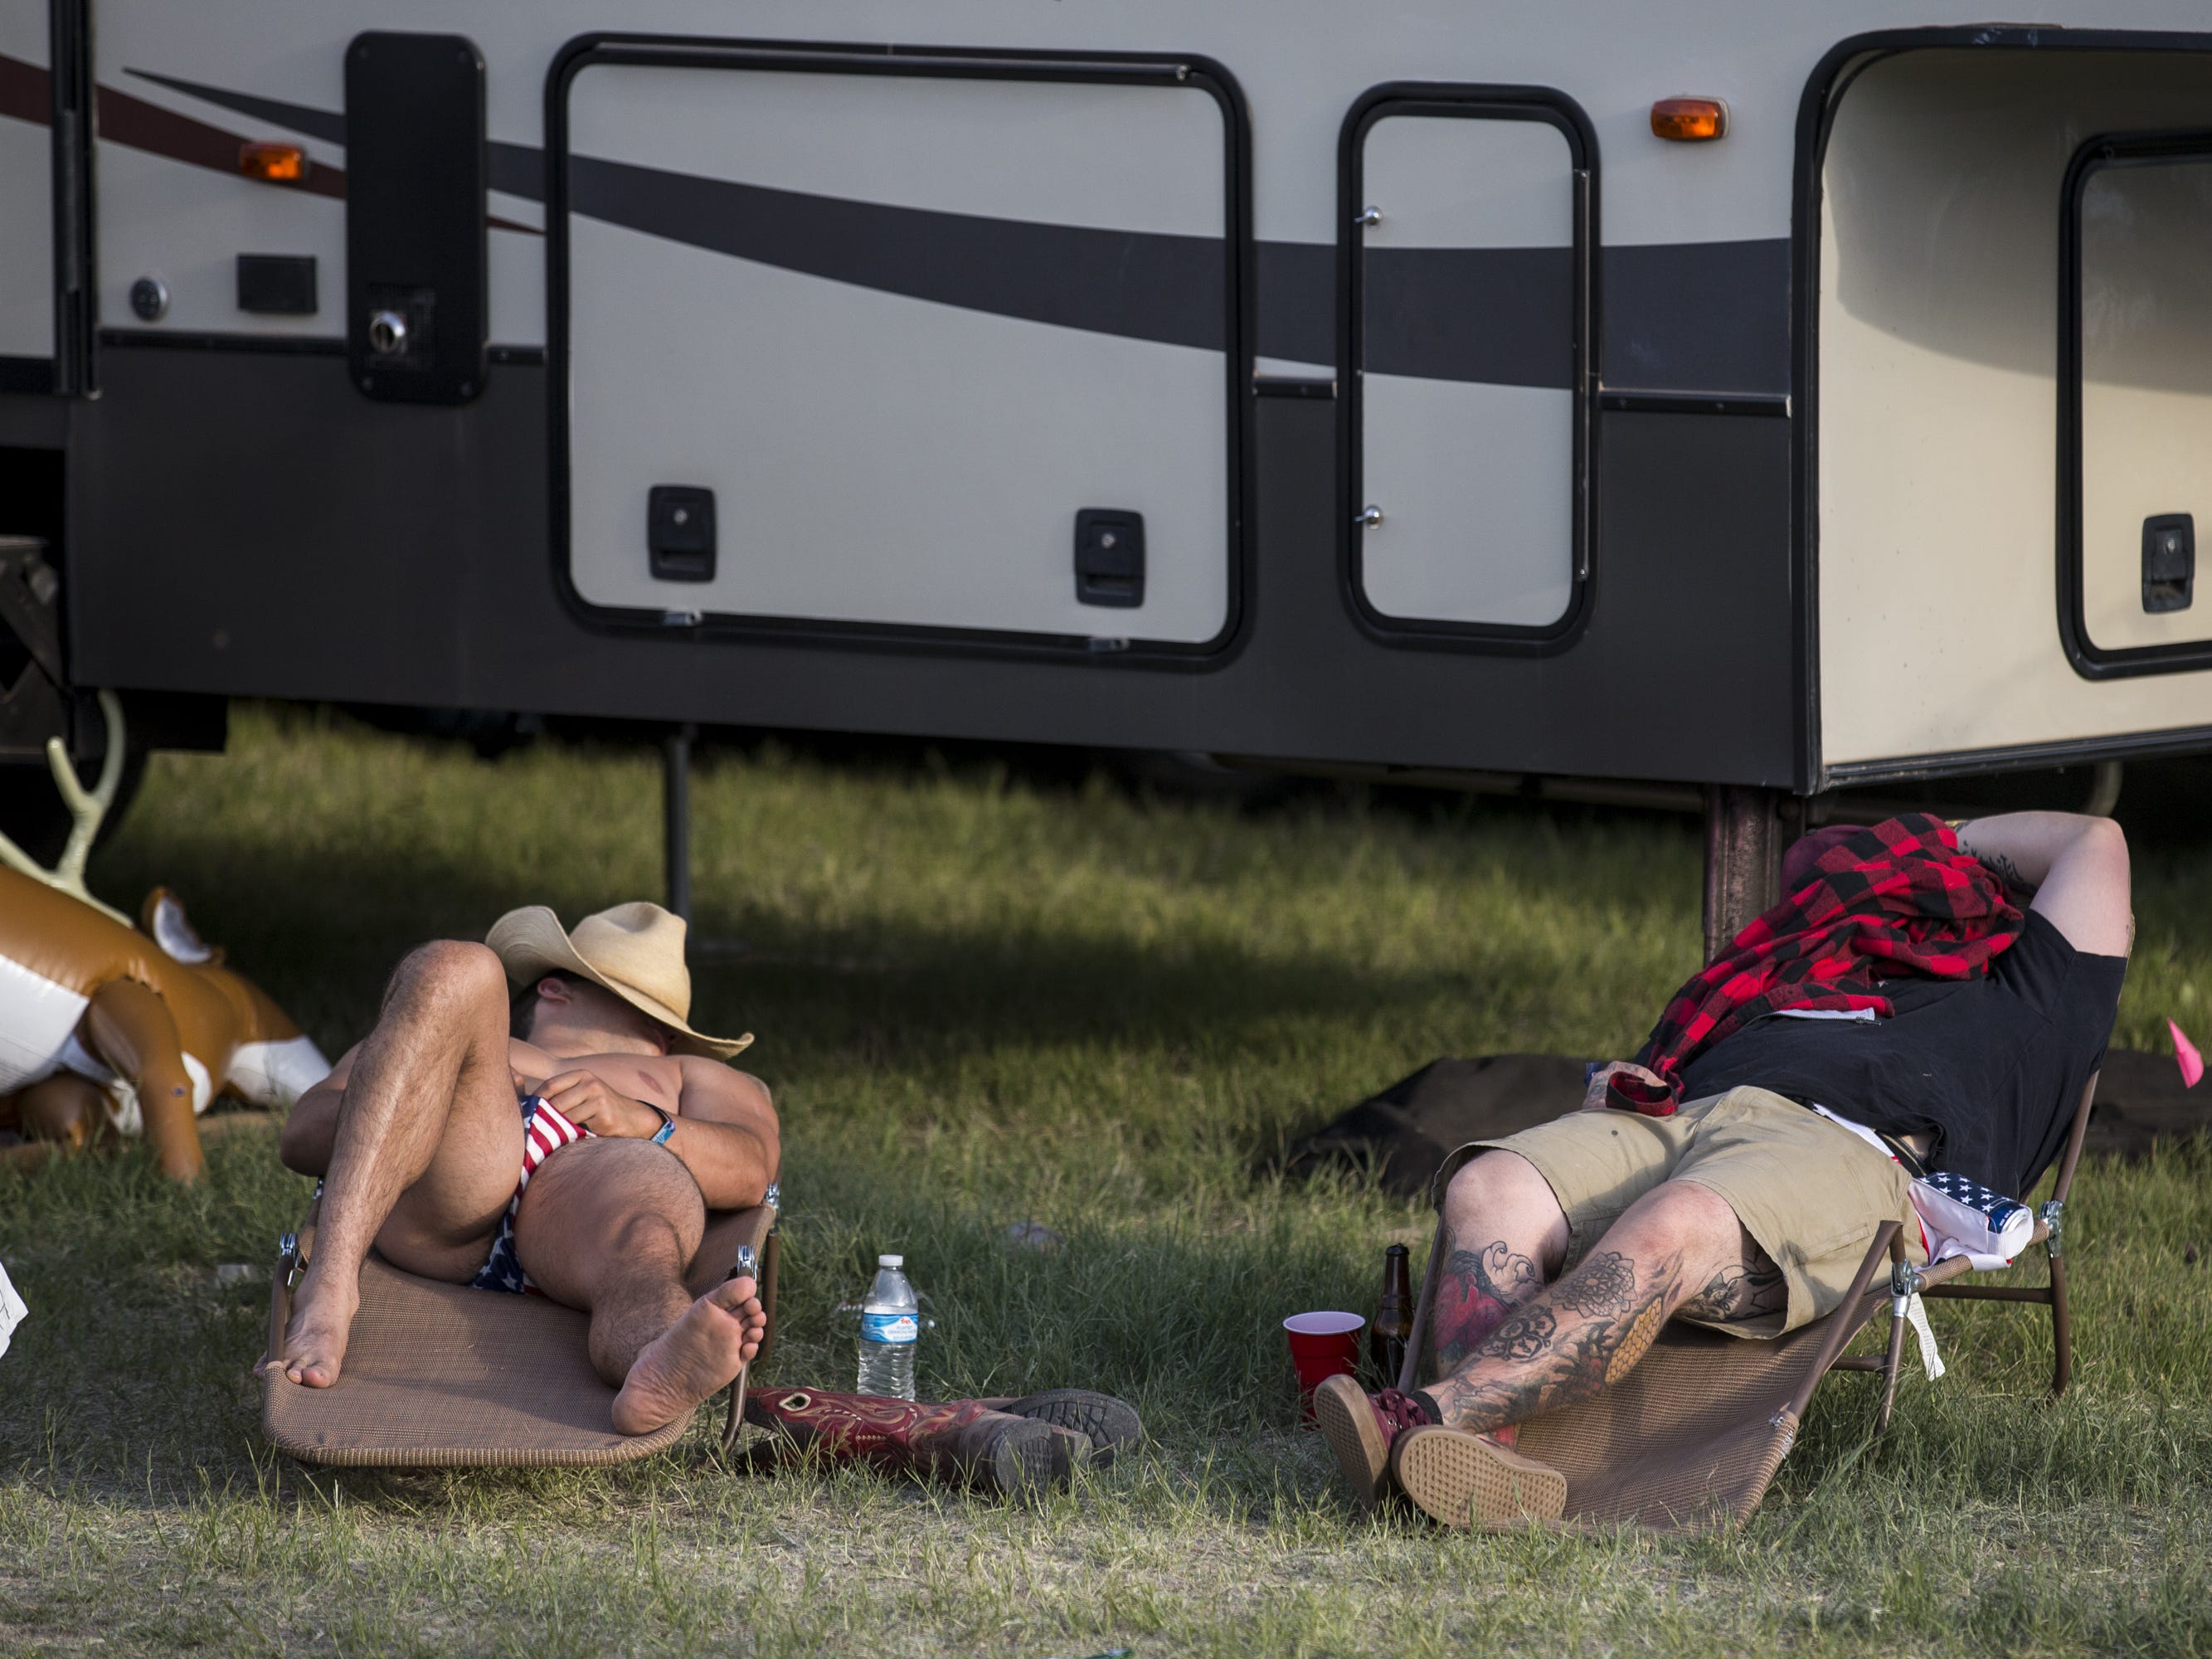 Festival-goers sleep outside an RV on Friday, April 12, 2019, during Day 2 of Country Thunder Arizona in Florence, Ariz.